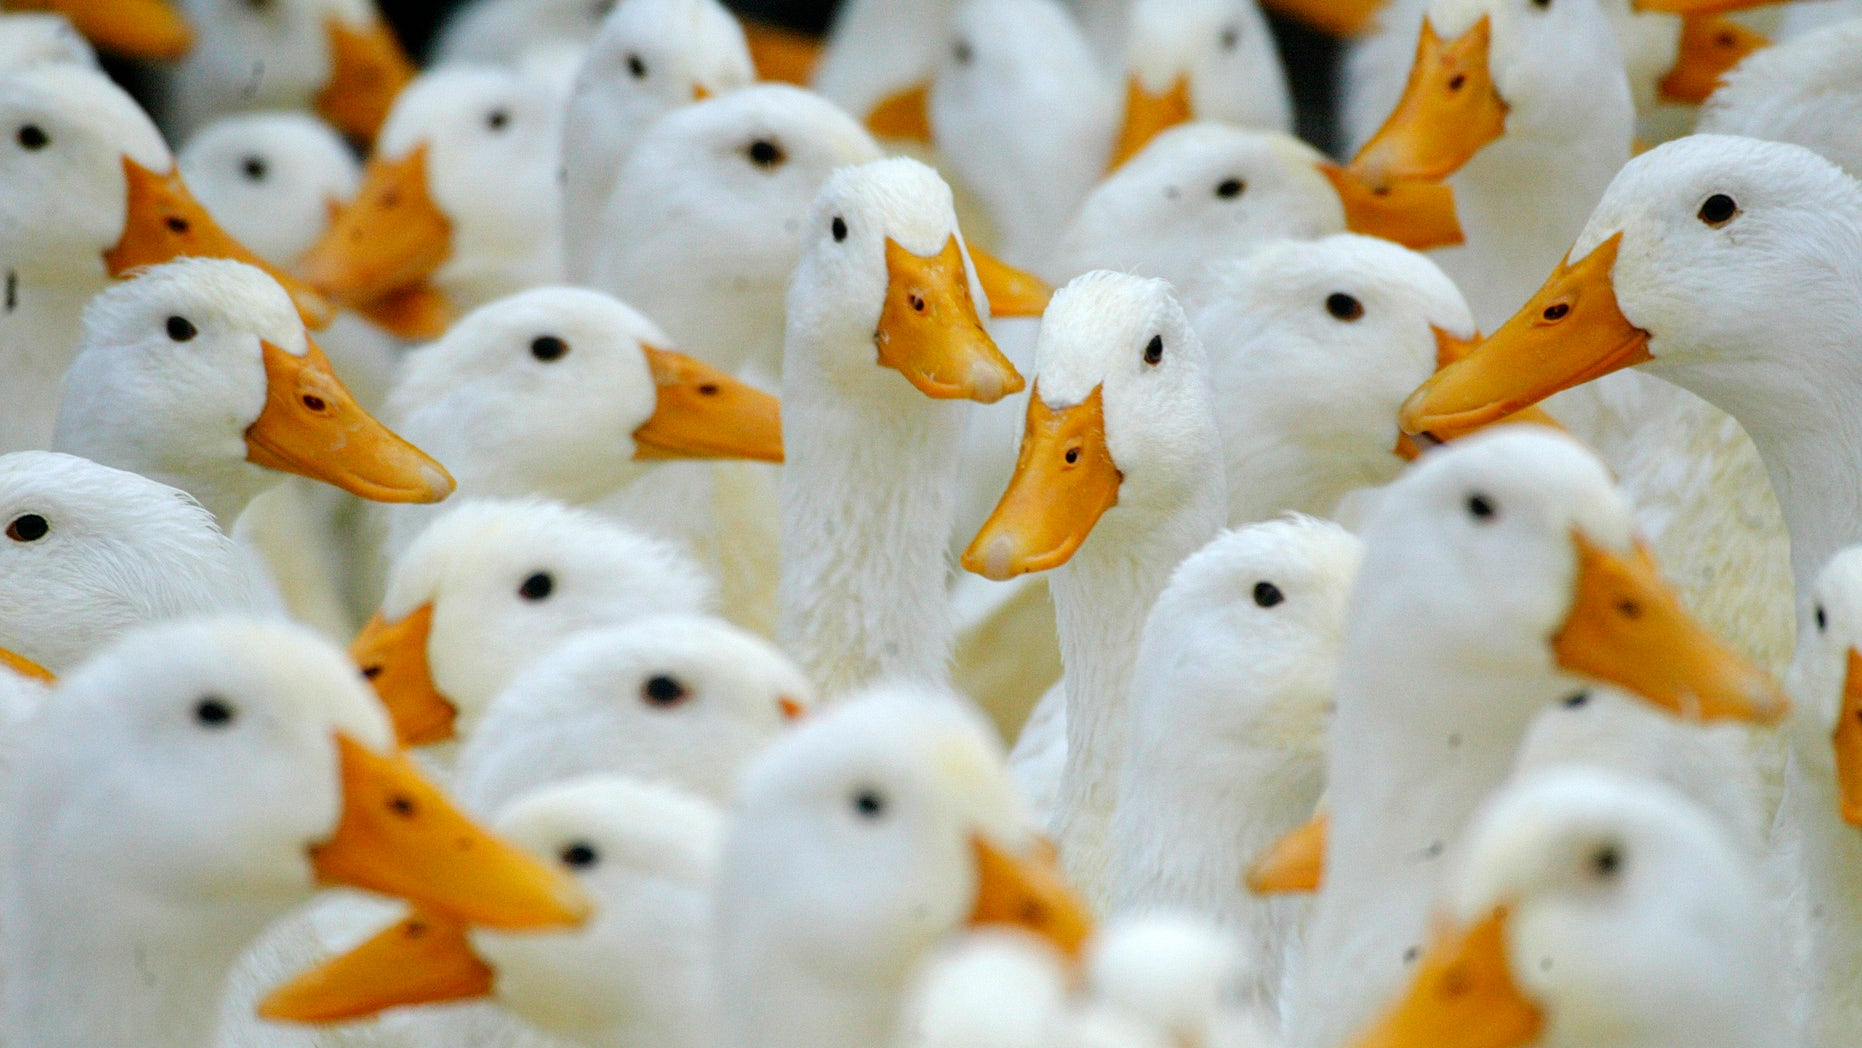 Ducks at a fresh market in Taipei wait to be slaughtered January 29, 2004. Taiwan found new cases of H5N2, a milder strain of avian flu, in ducks in the southwestern county of Yunlin on Thursday and plans to cull 10,000 ducks in a bid to stop the spread of the disease.